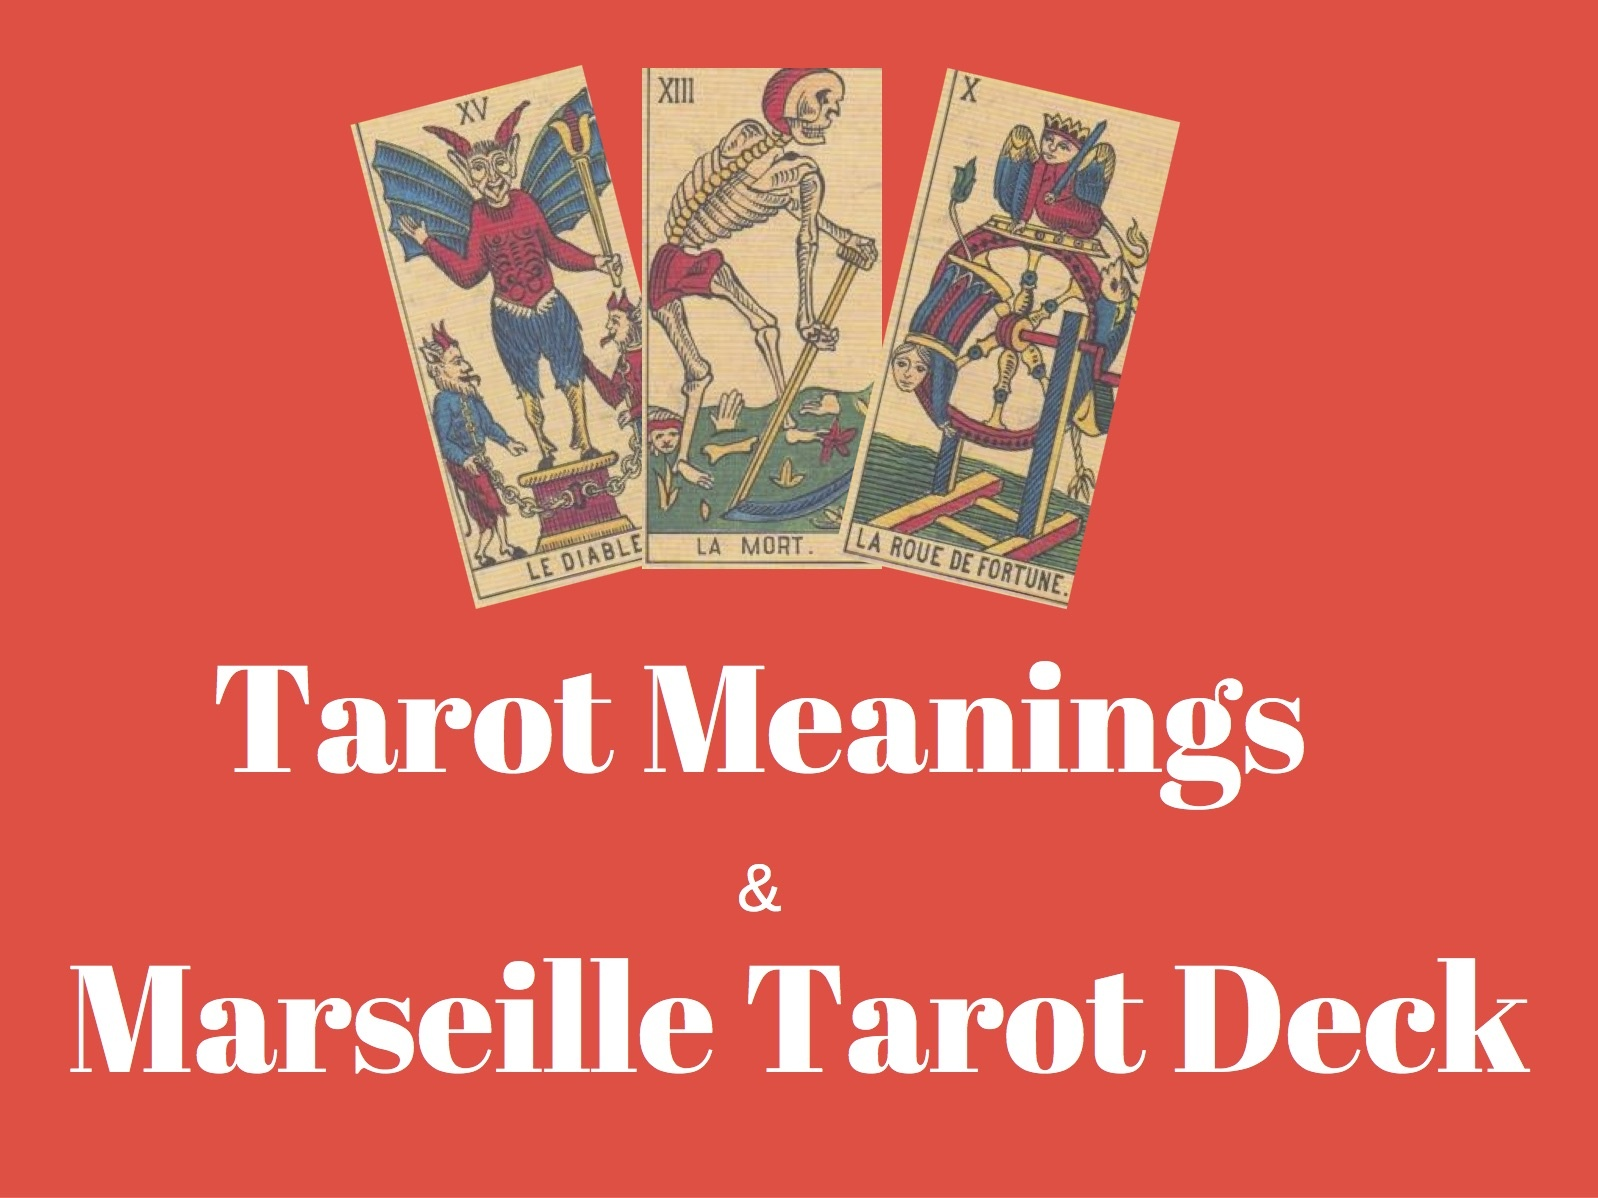 This is a graphic of Printable Tarot Cheat Sheet for tarot spreads